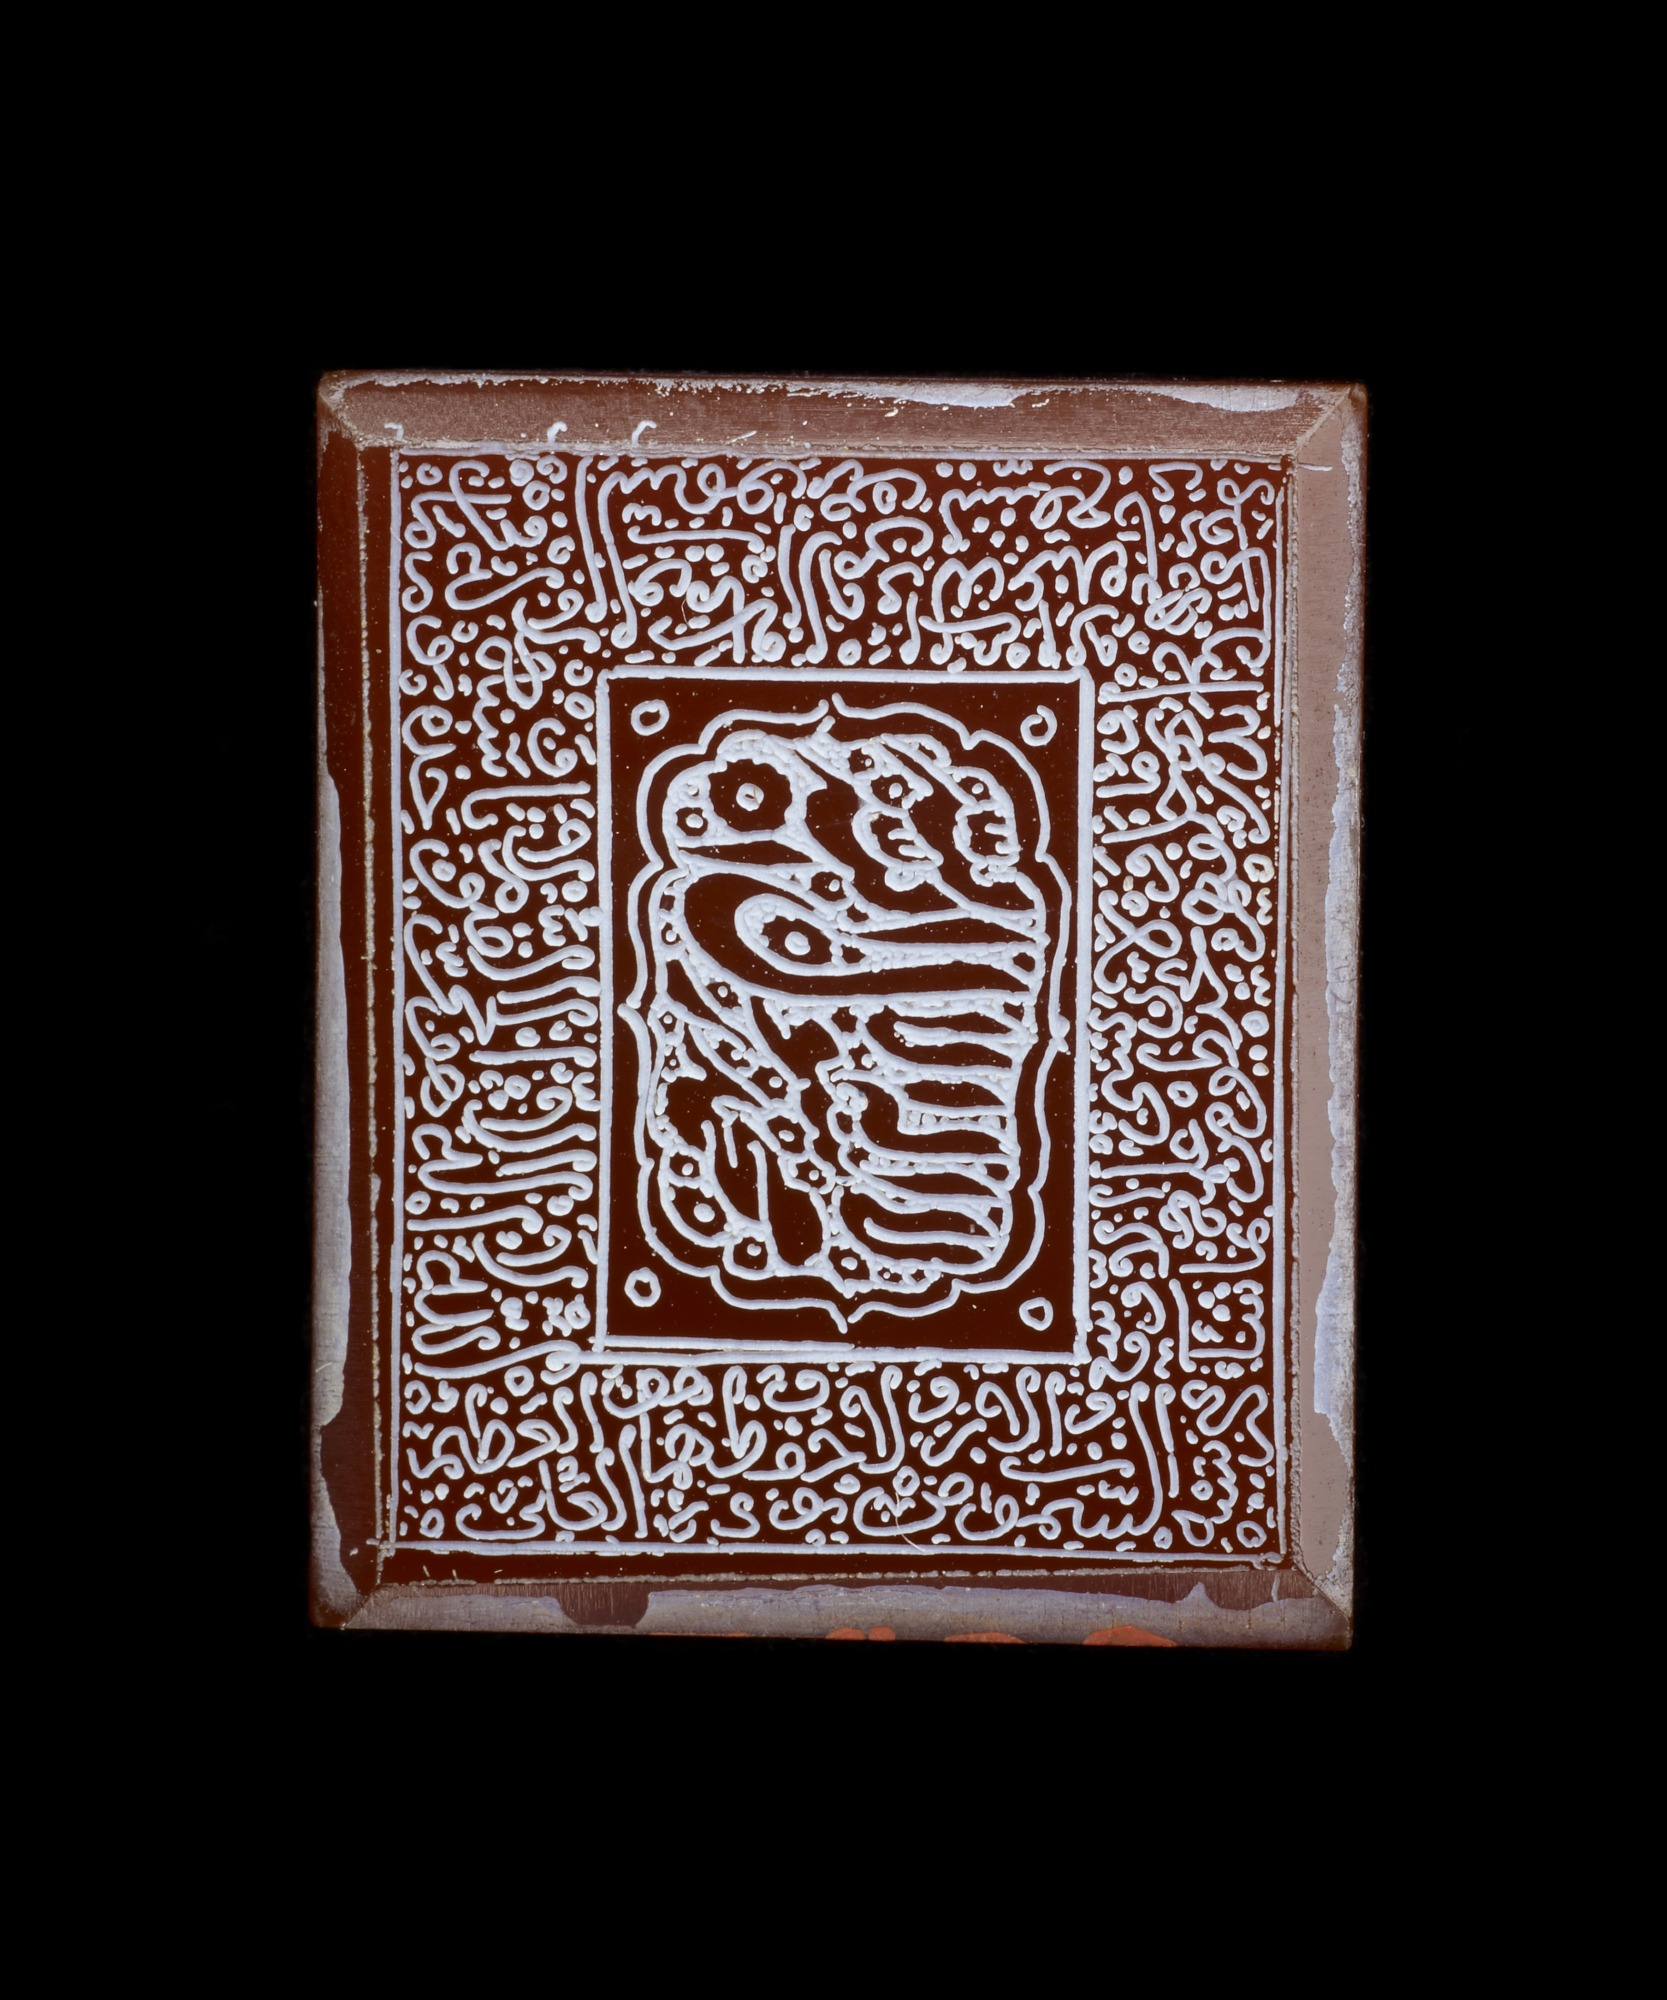 images for Seal amulet